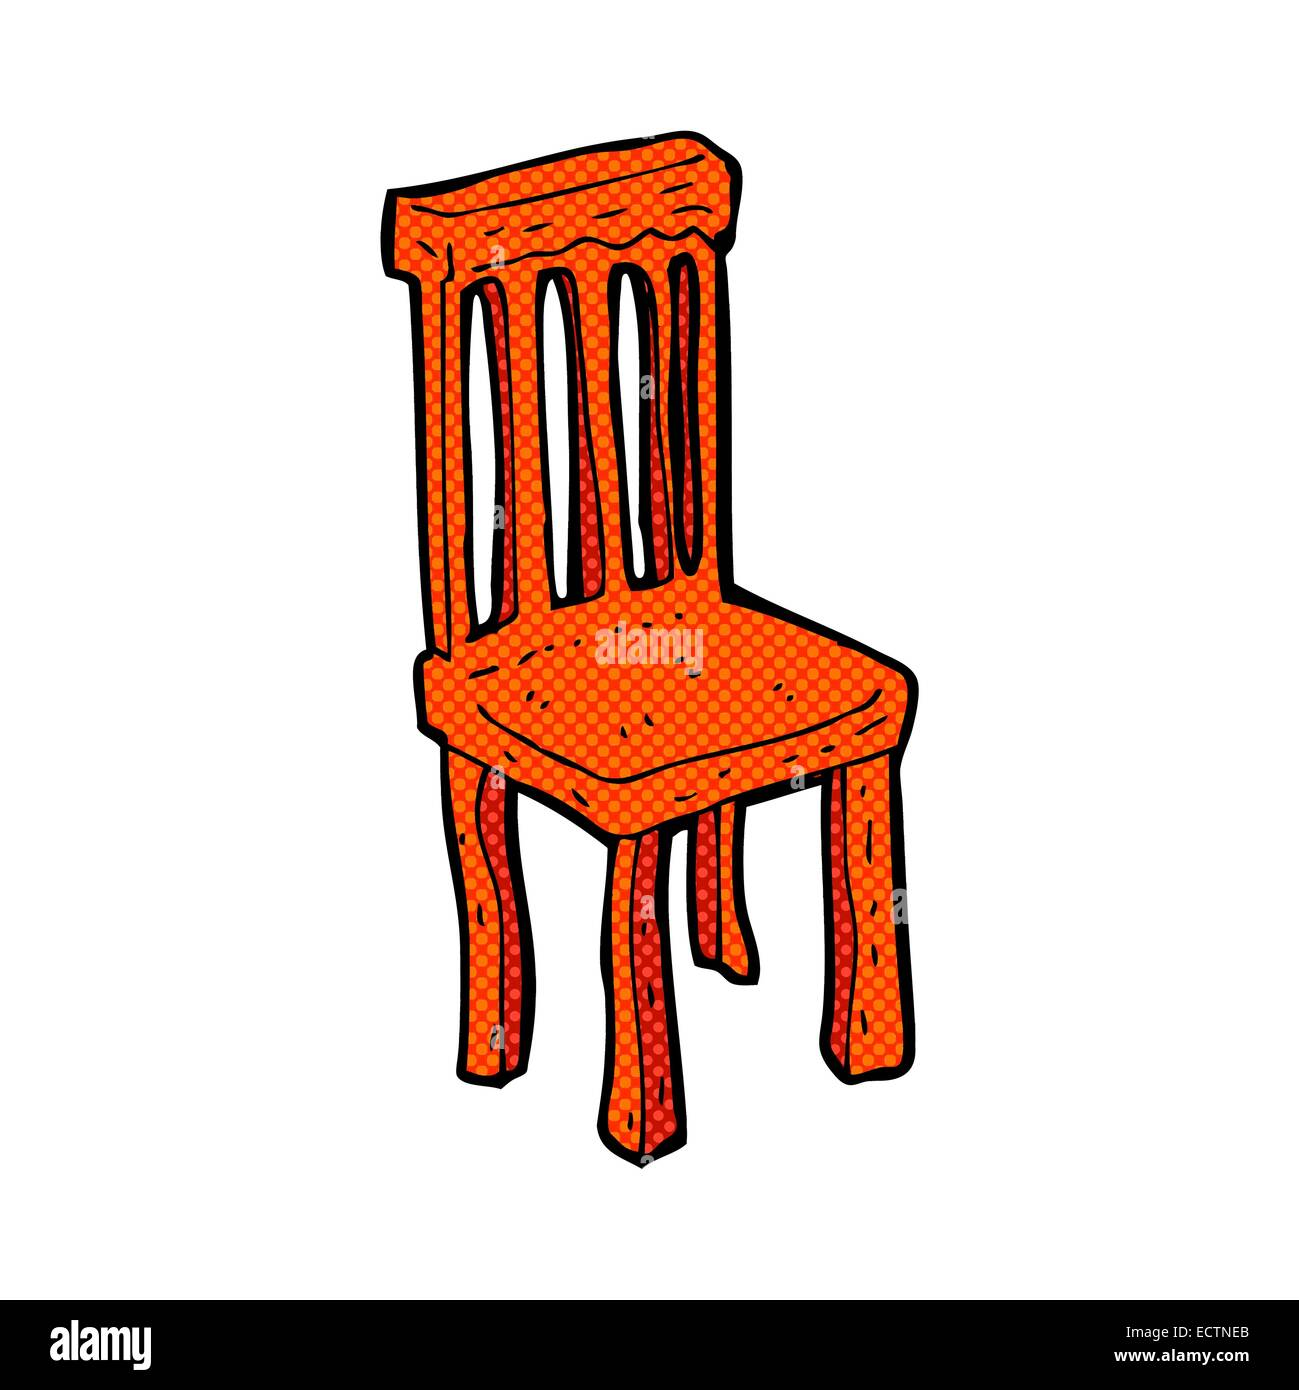 Old wooden chair styles - Stock Vector Retro Comic Book Style Cartoon Old Wooden Chair